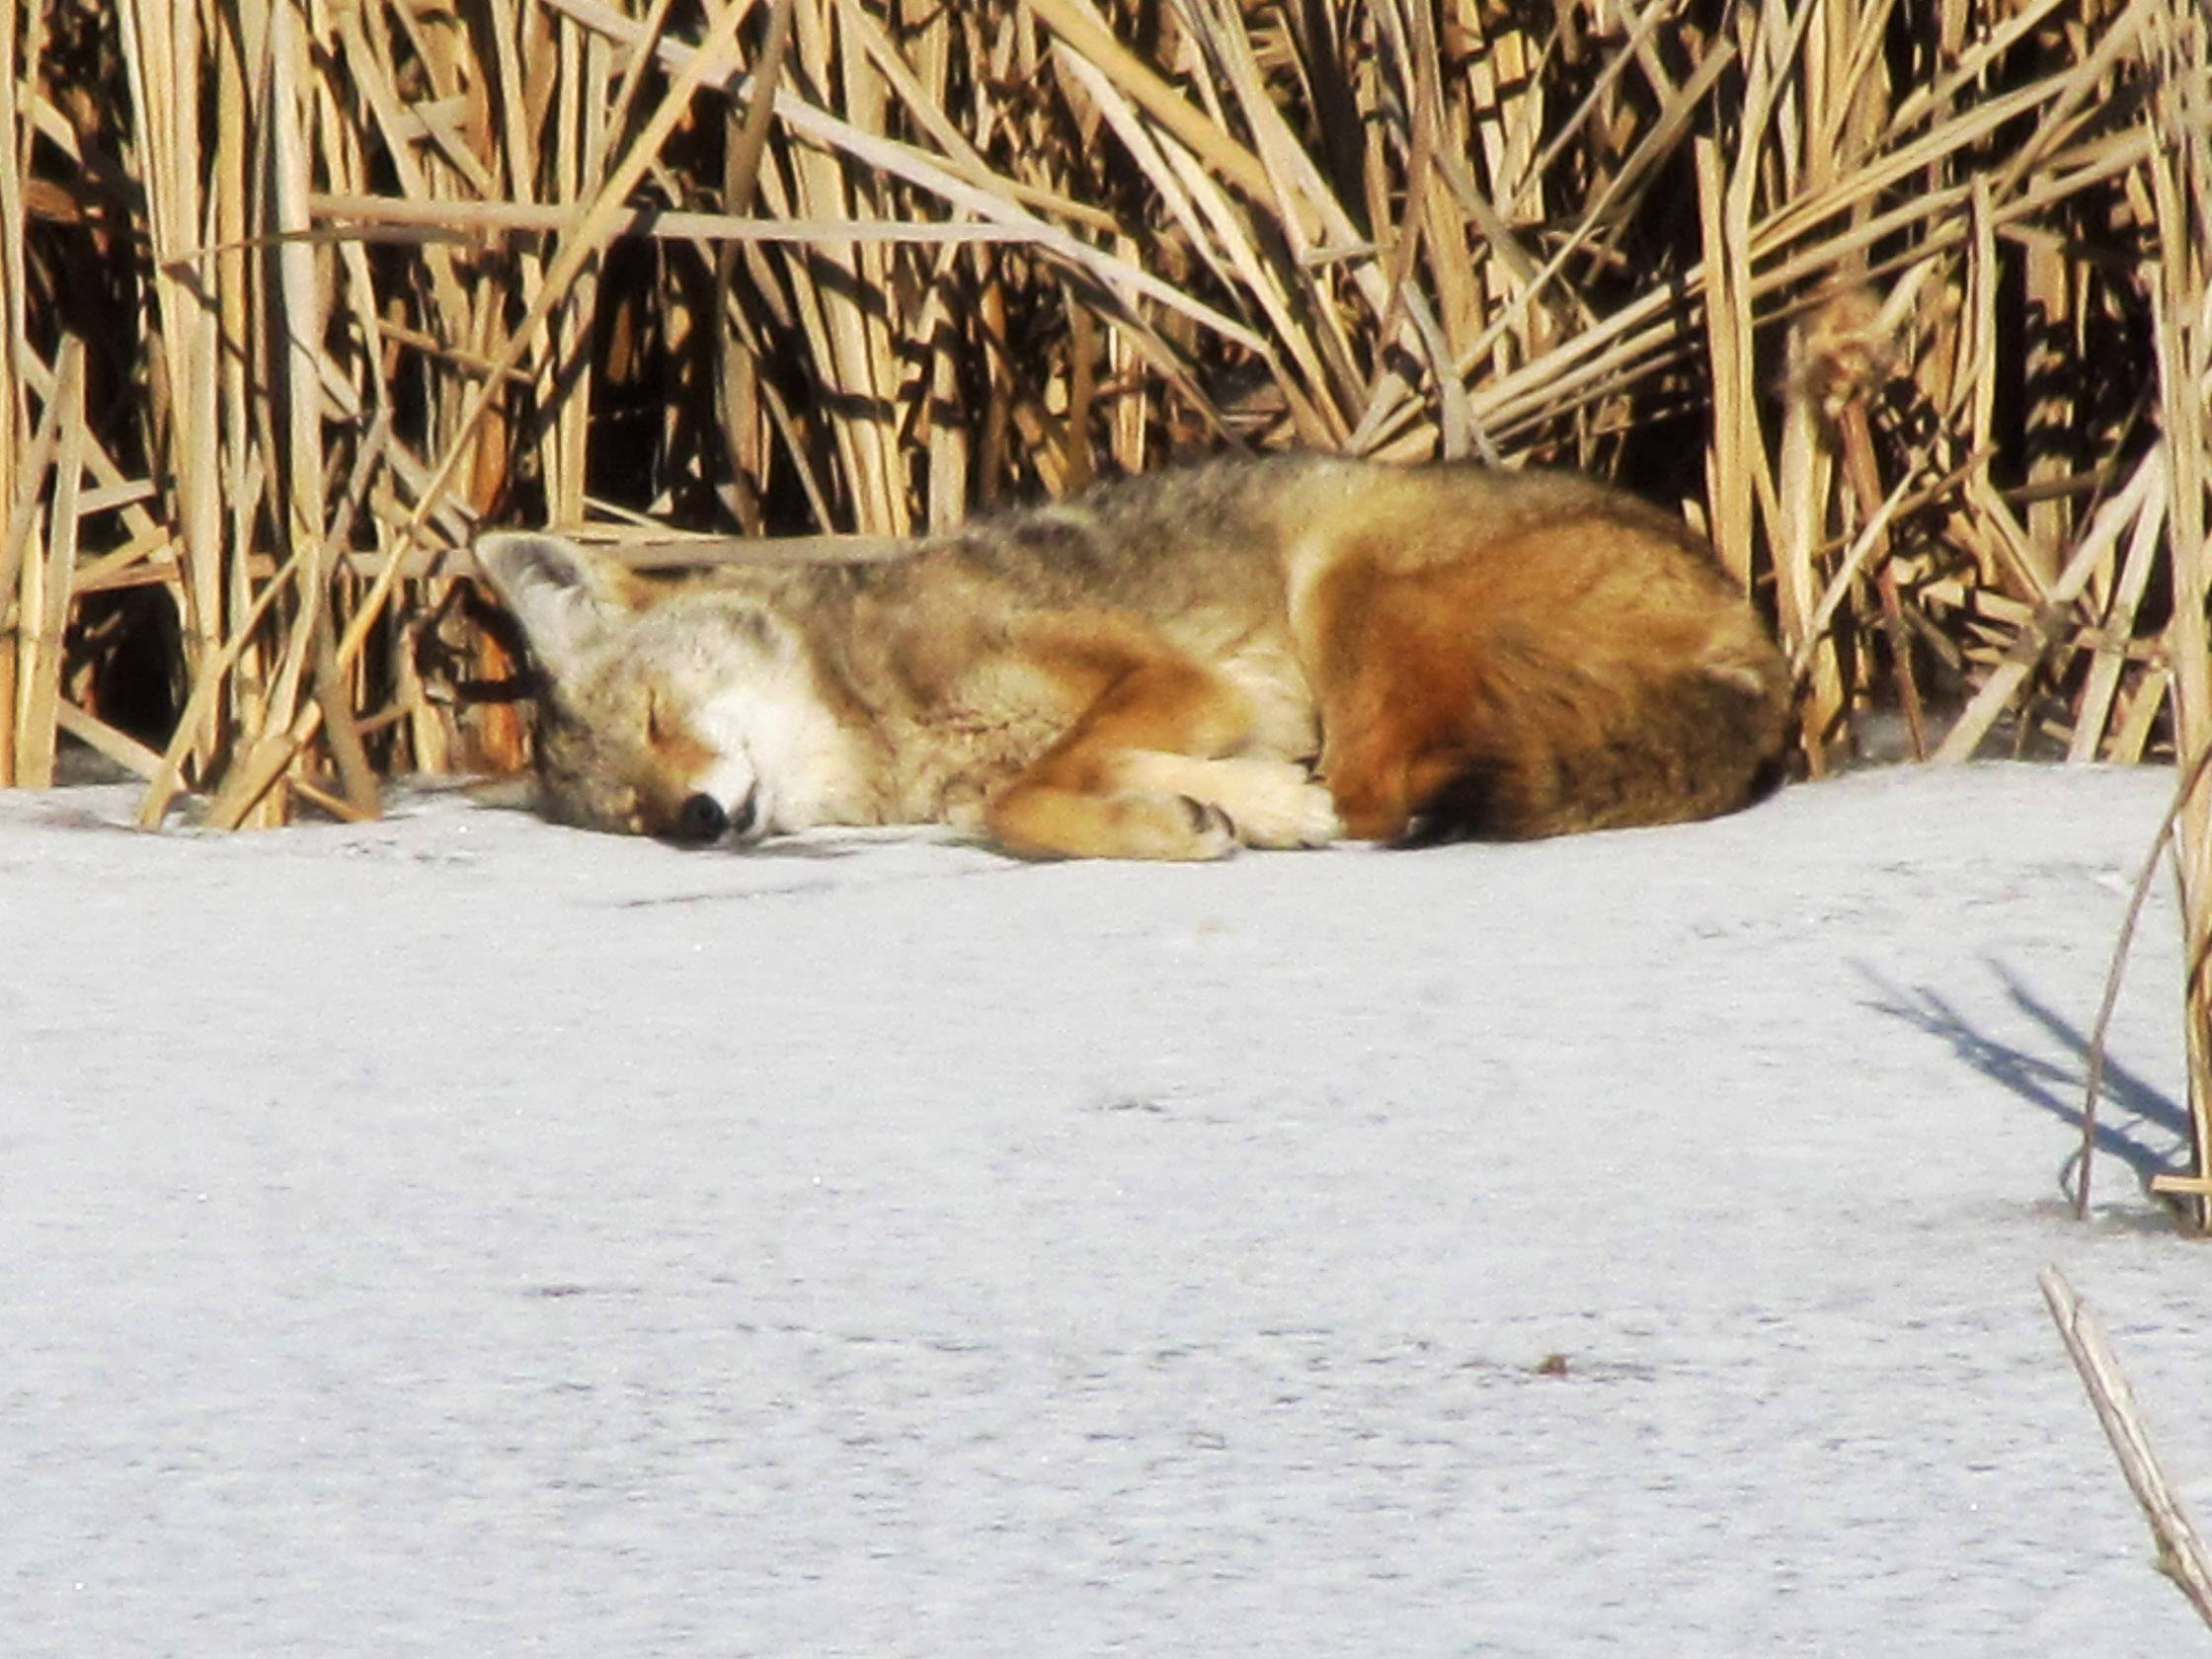 A coyote takes an afternoon nap near wetlands in Hawthorn Woods on February 17, 2013.